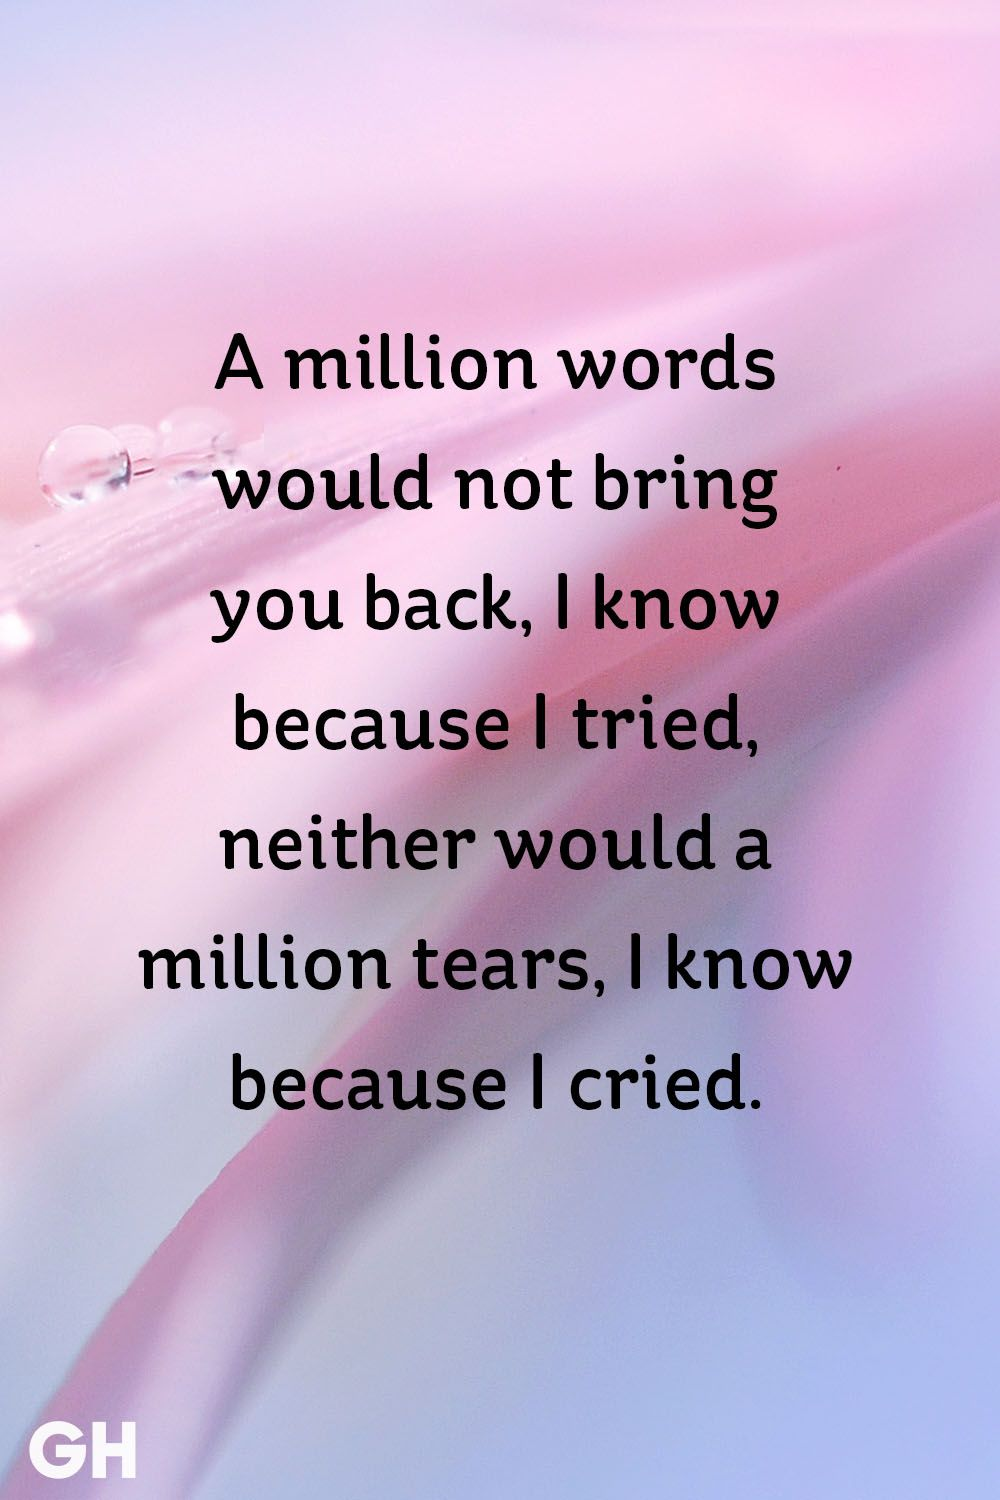 Image of: Loyalty Best Sad Quotes Quote Ambition 16 Best Sad Quotes Quotes Sayings About Sadness And Tough Times